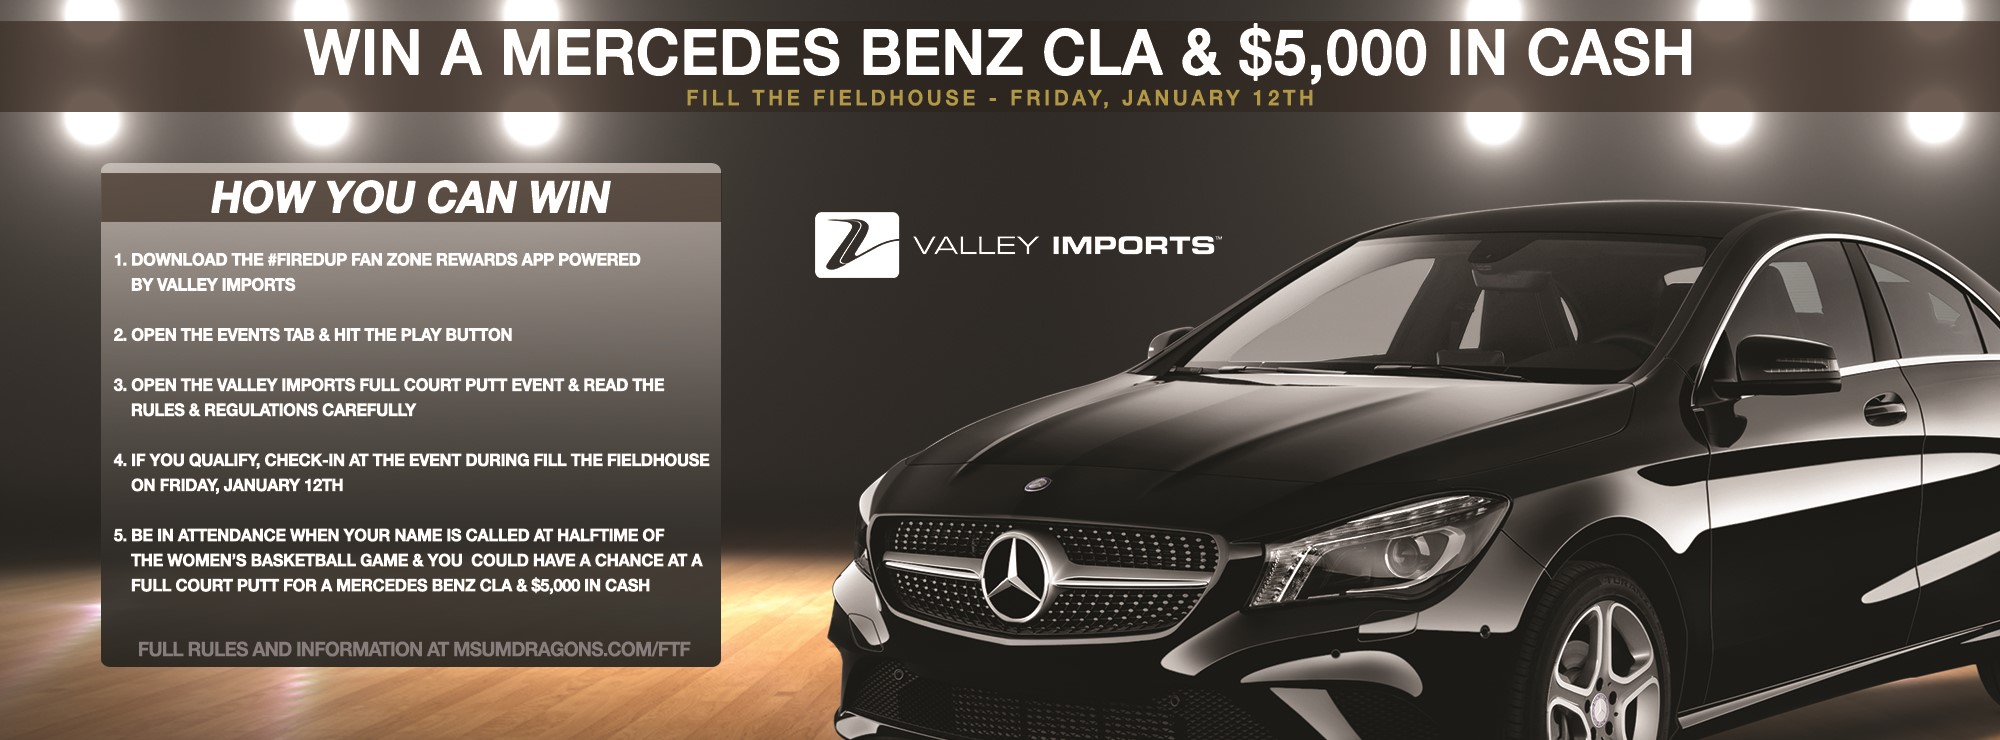 Win a new mercedes benz cla 5 000 cash from valley for Win a mercedes benz